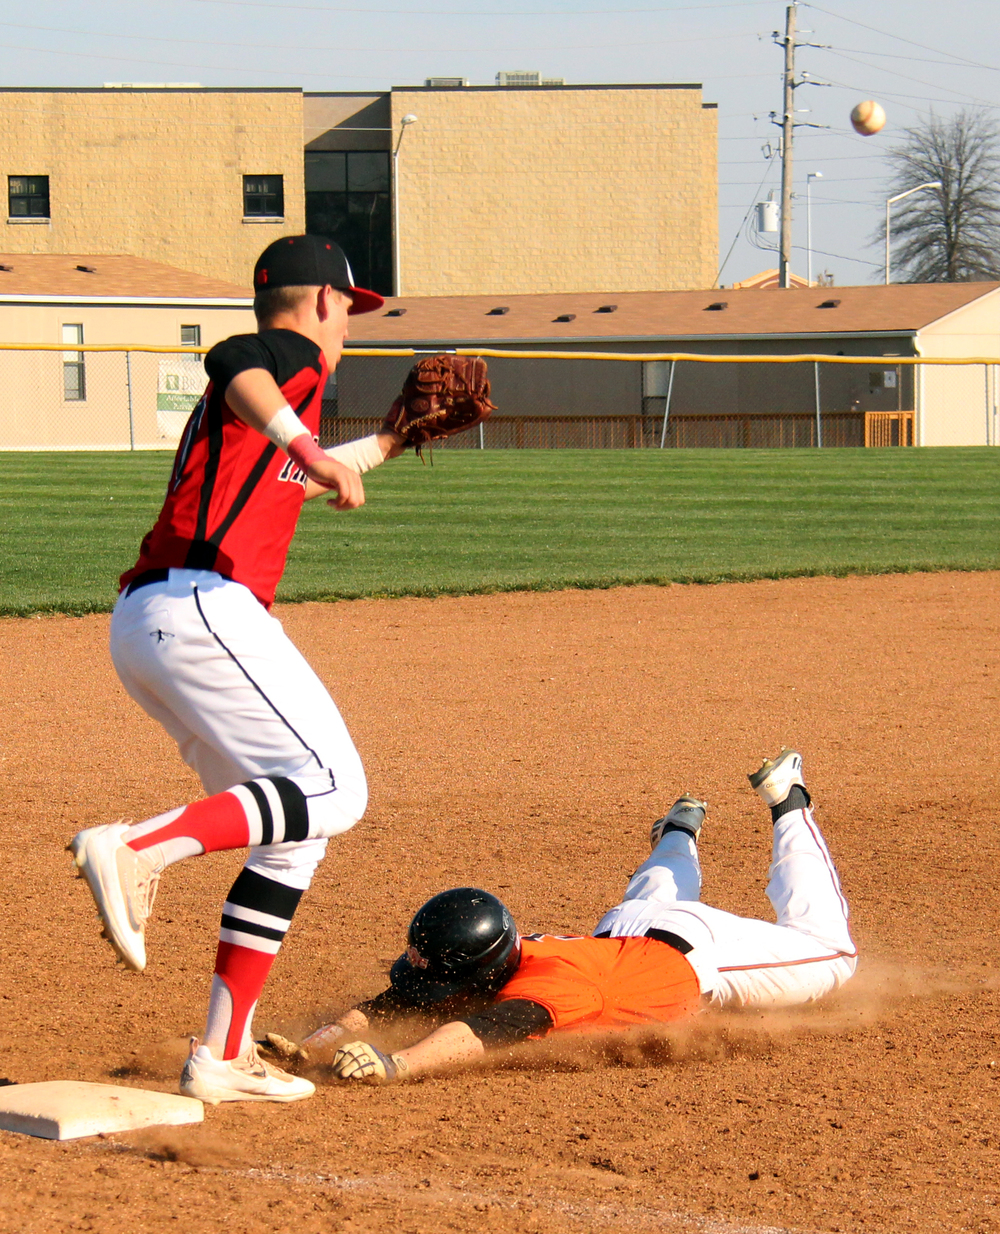 ROSS MARTIN/Citizen photo Platte County senior Colton Horn, right, slides into third base while Park Hill third baseman Preston Cross awaits a throw in the seventh inning of Platte County's win against Park Hill on Wednesday, April 13 at Platte County High School.